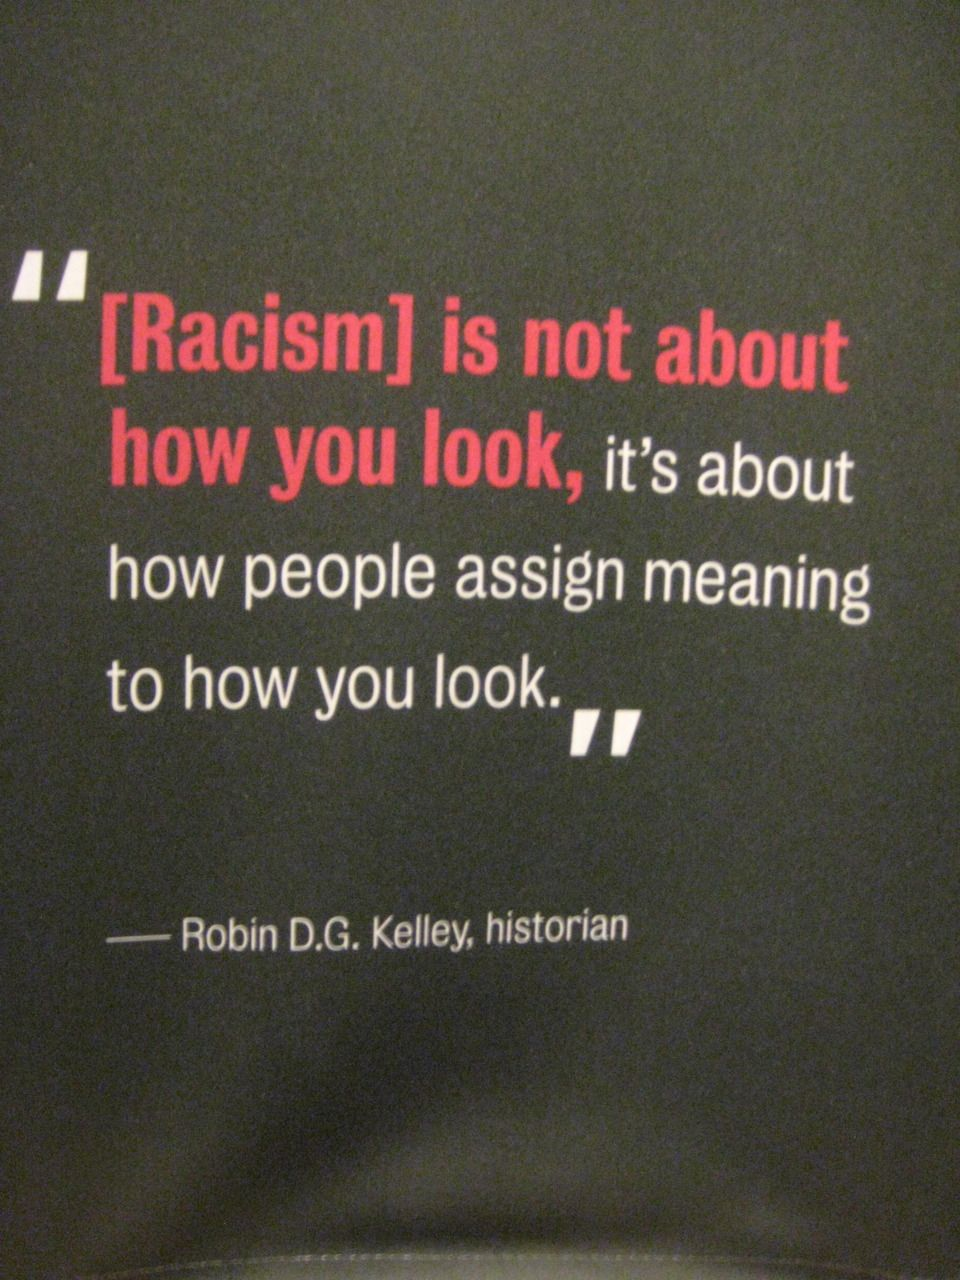 Quotes On Racism Love It When I Procrastinate And Find Something I Can Use For An